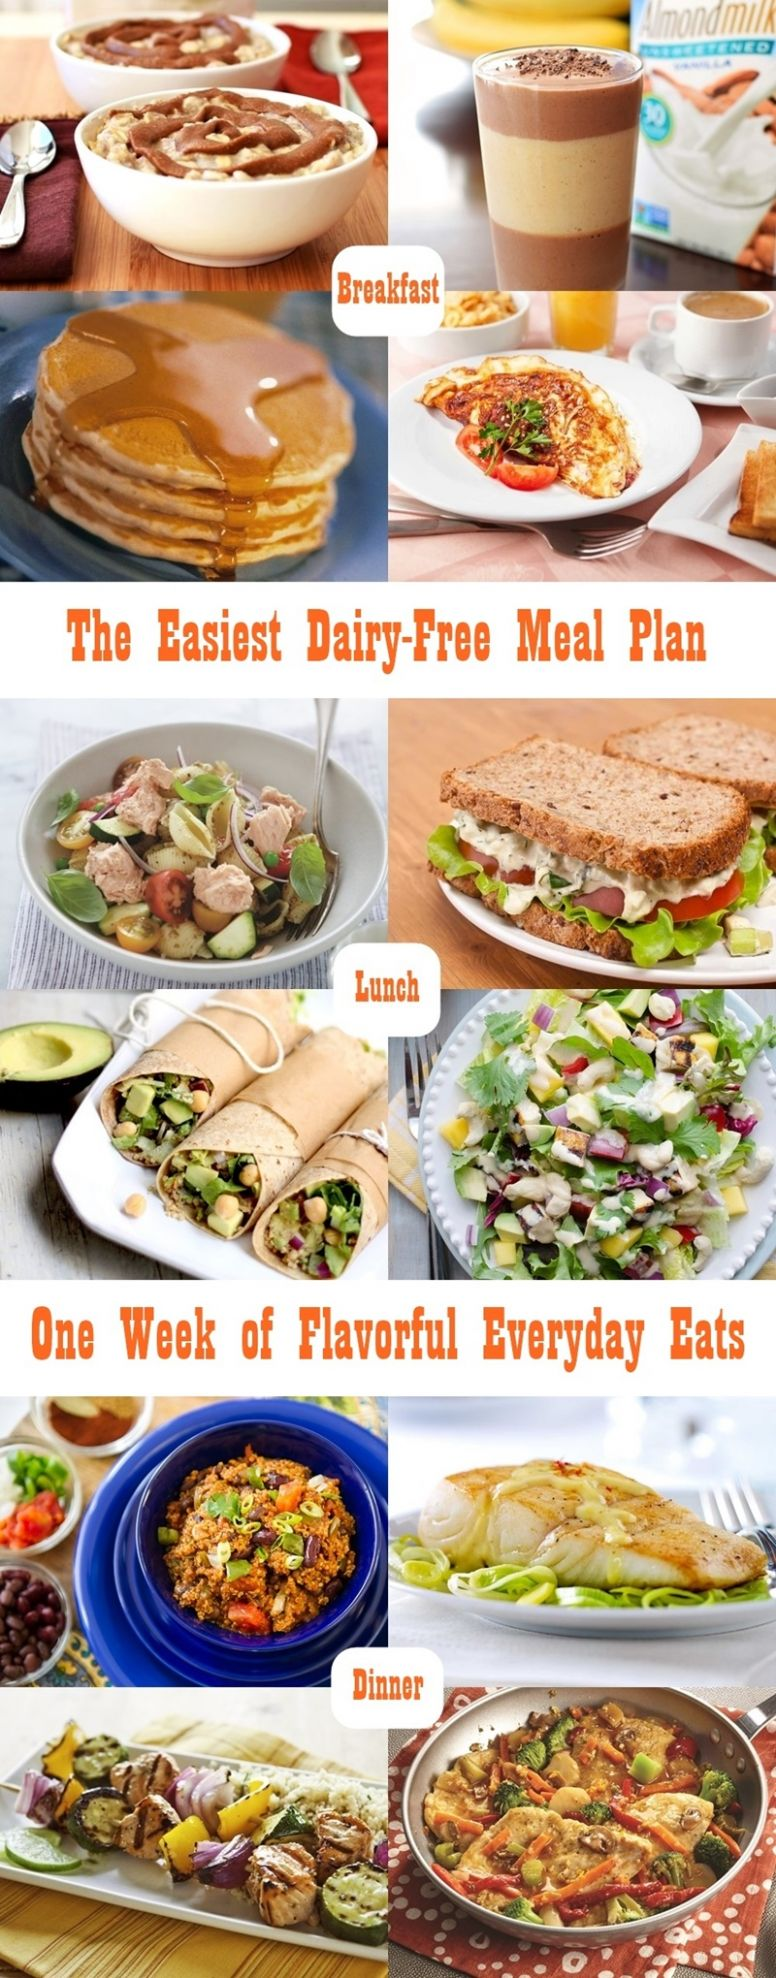 The Easiest Dairy-Free Meal Plan (gluten-free optional)